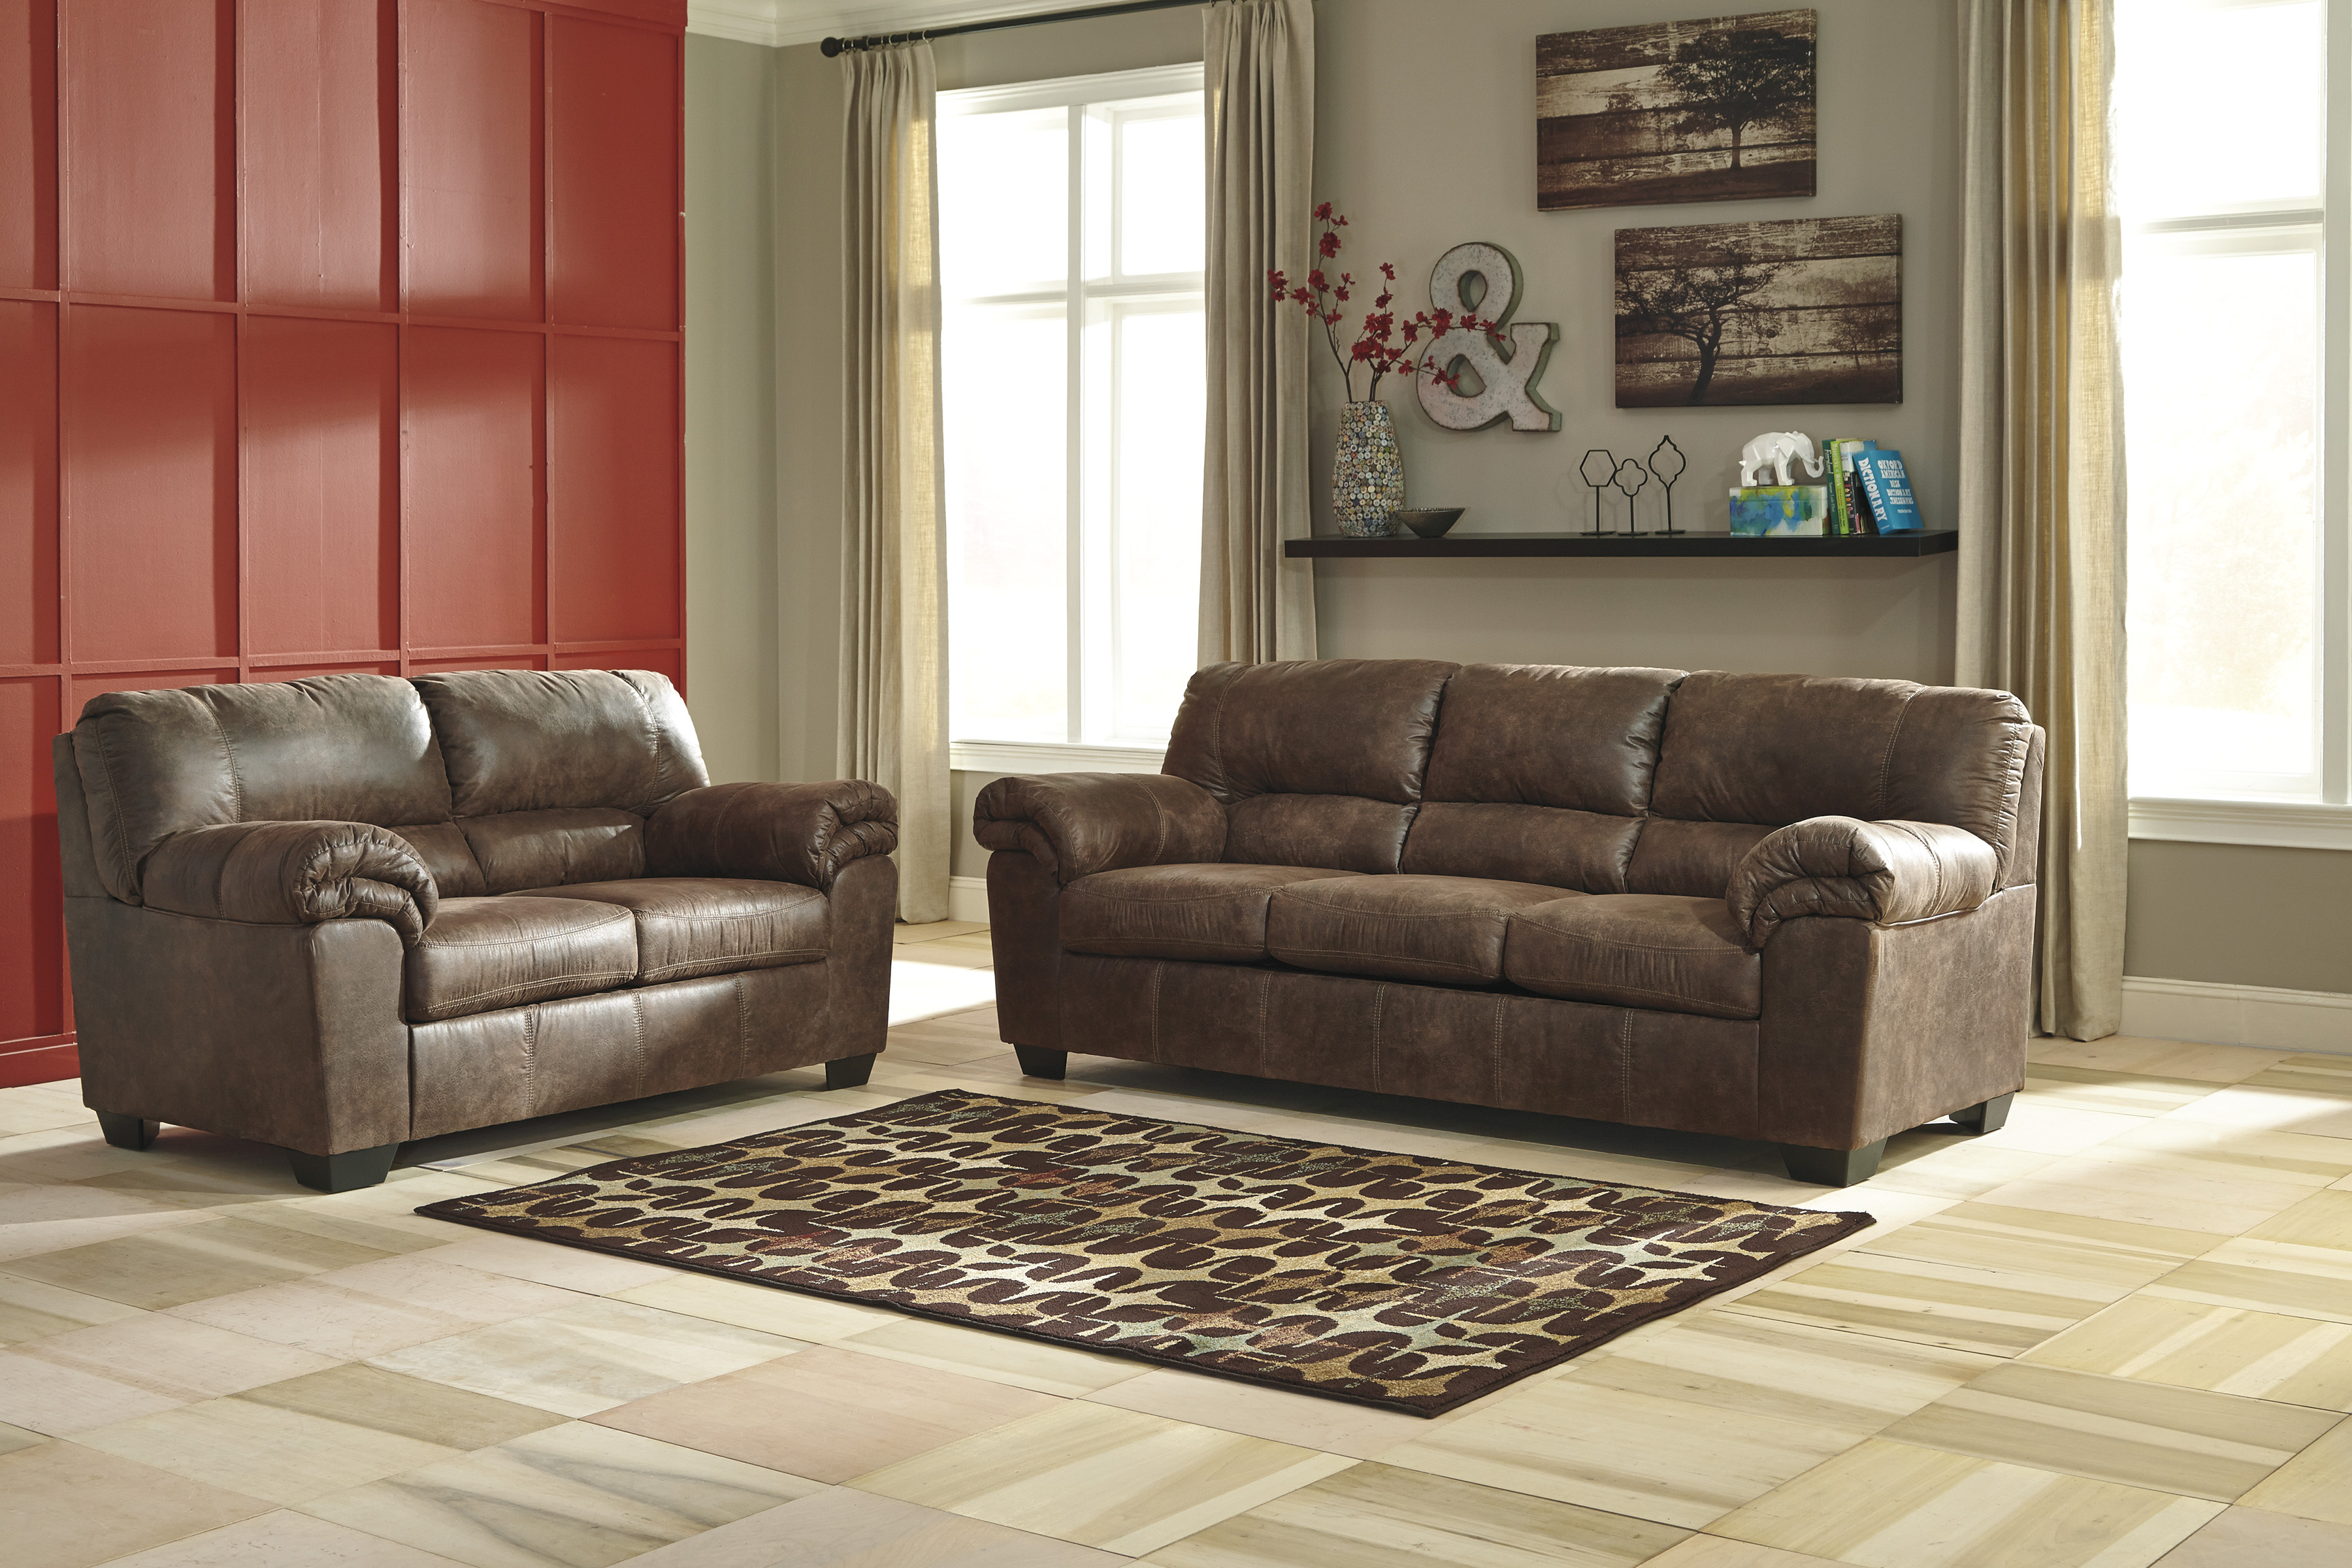 Bladen Slate Sofa and Loveseat  / $22.99 A Week